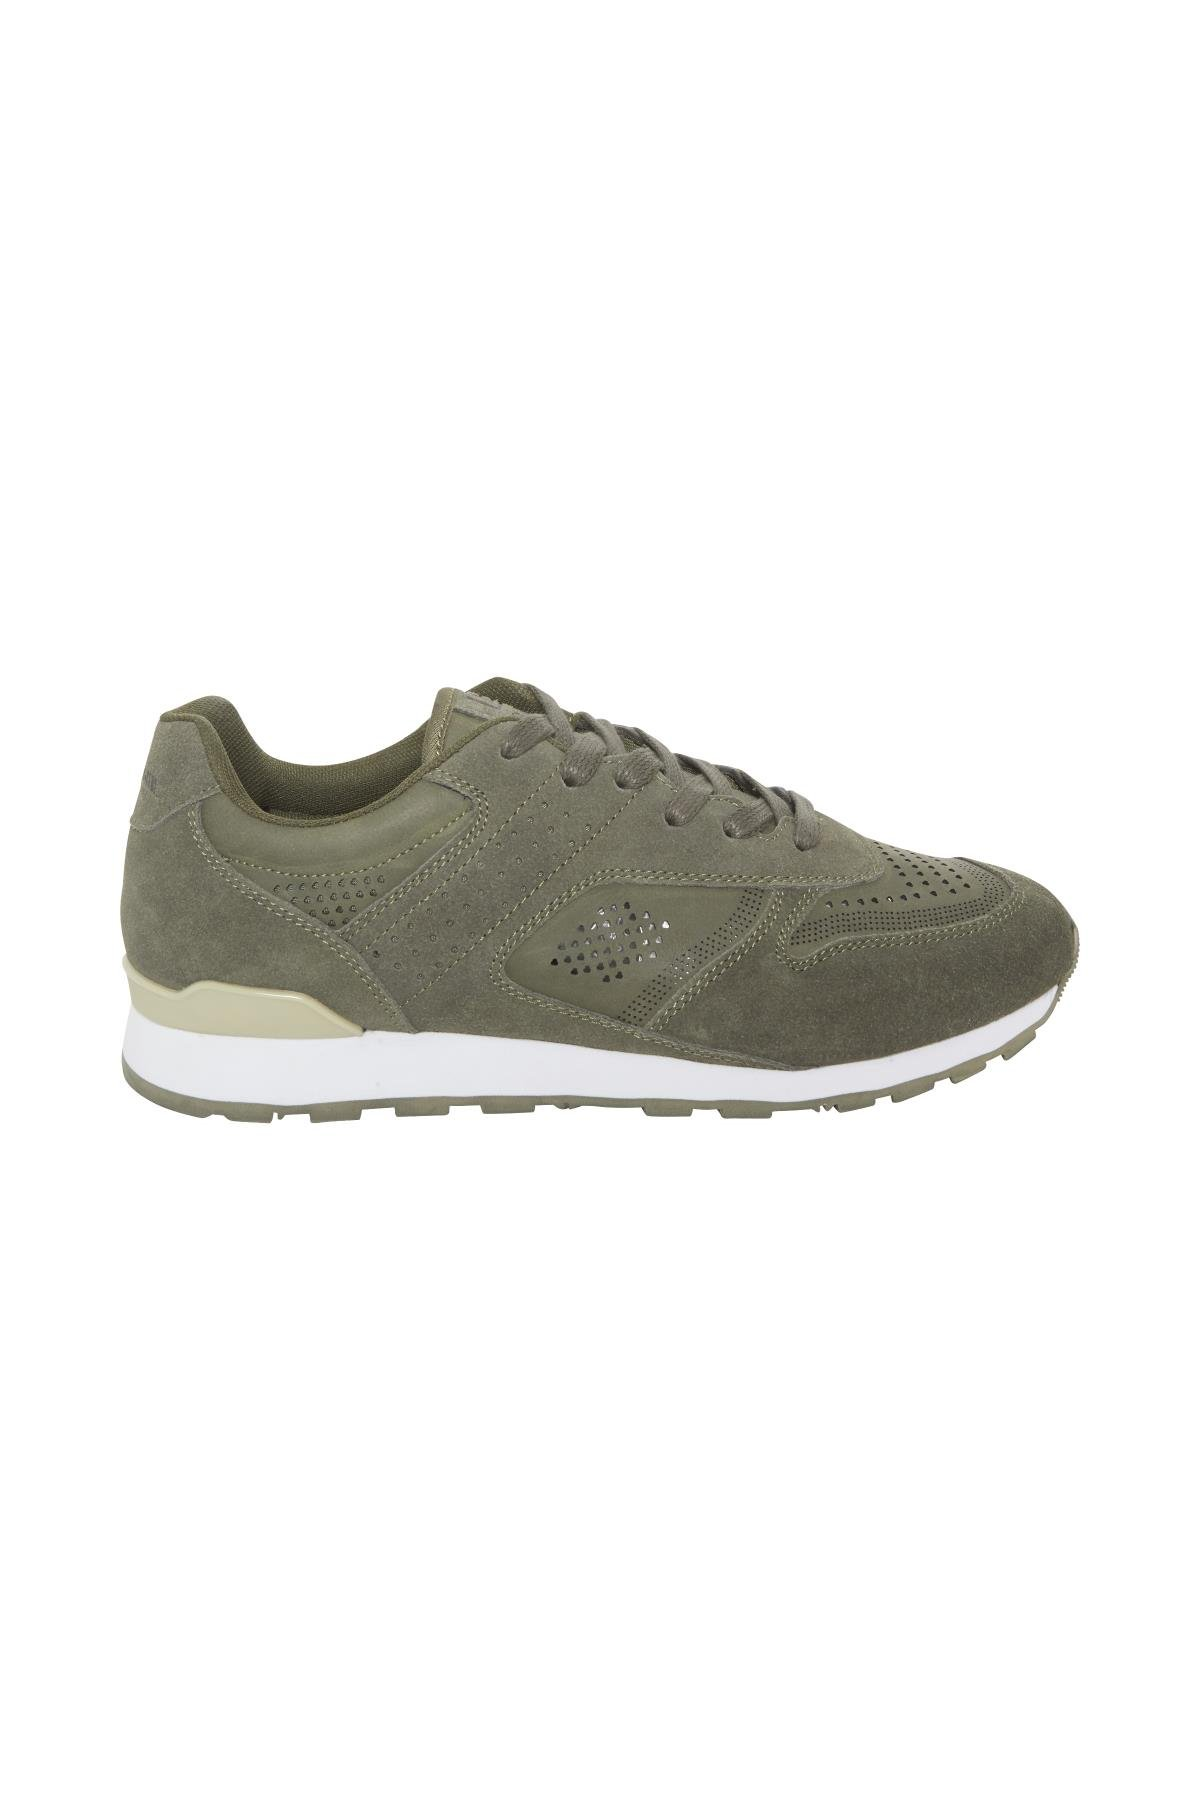 Dusty Olive Green Sneakers fra Blend He Shoes – Køb Dusty Olive Green Sneakers fra str. 41-46 her